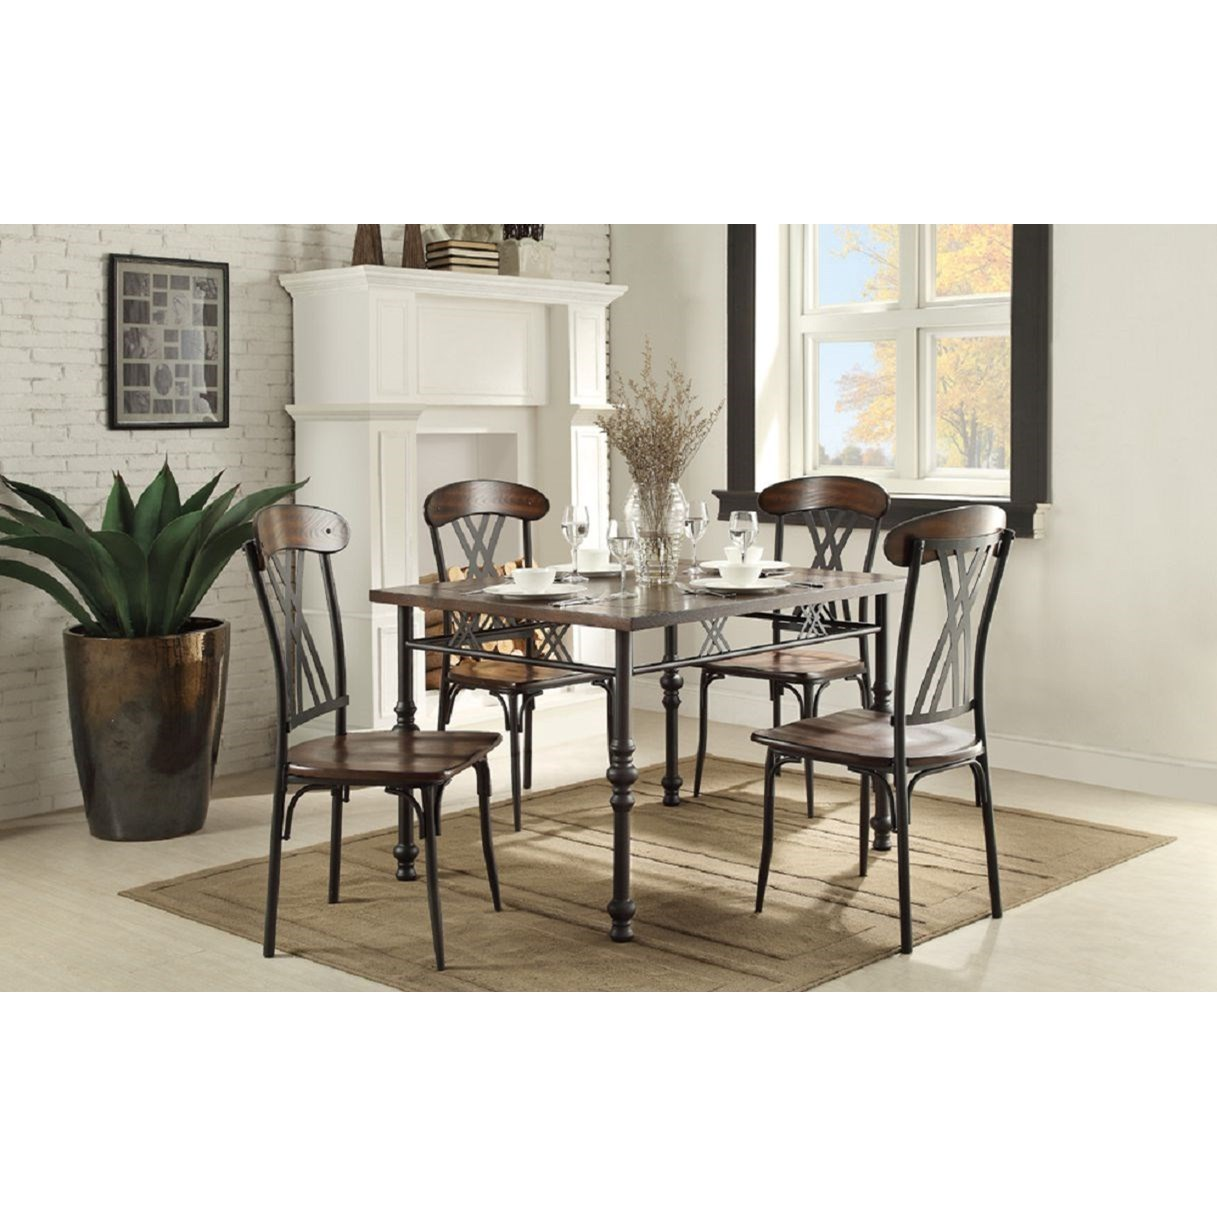 Loyalton Kitchen Table and Chair Set by Homelegance at Carolina Direct